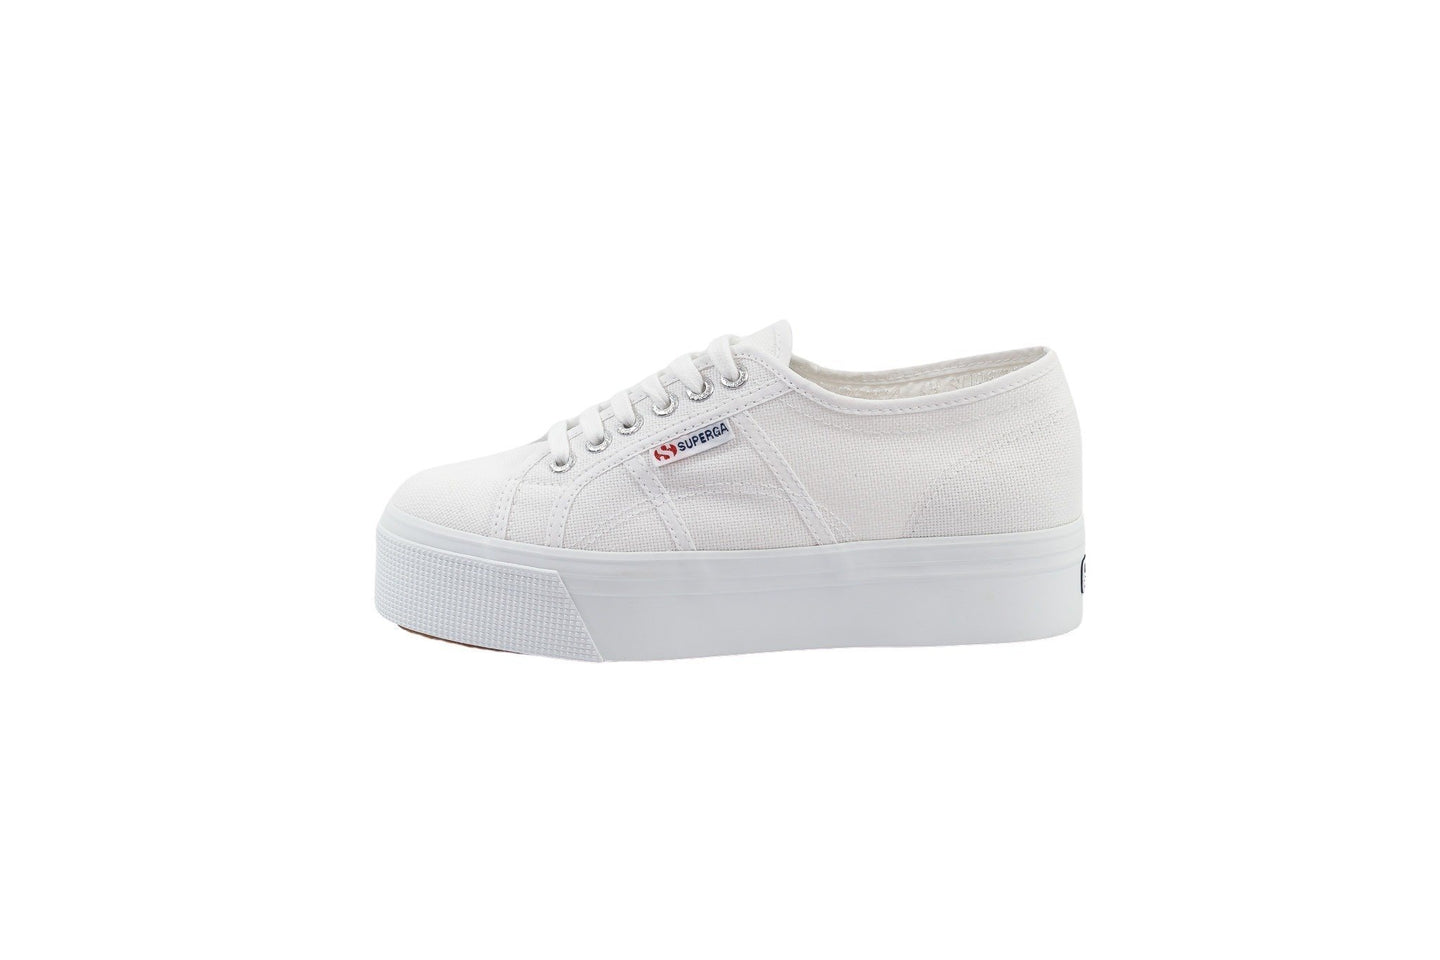 Superga 2790 Acotw Linea Up and Down - Goldjunge-Store